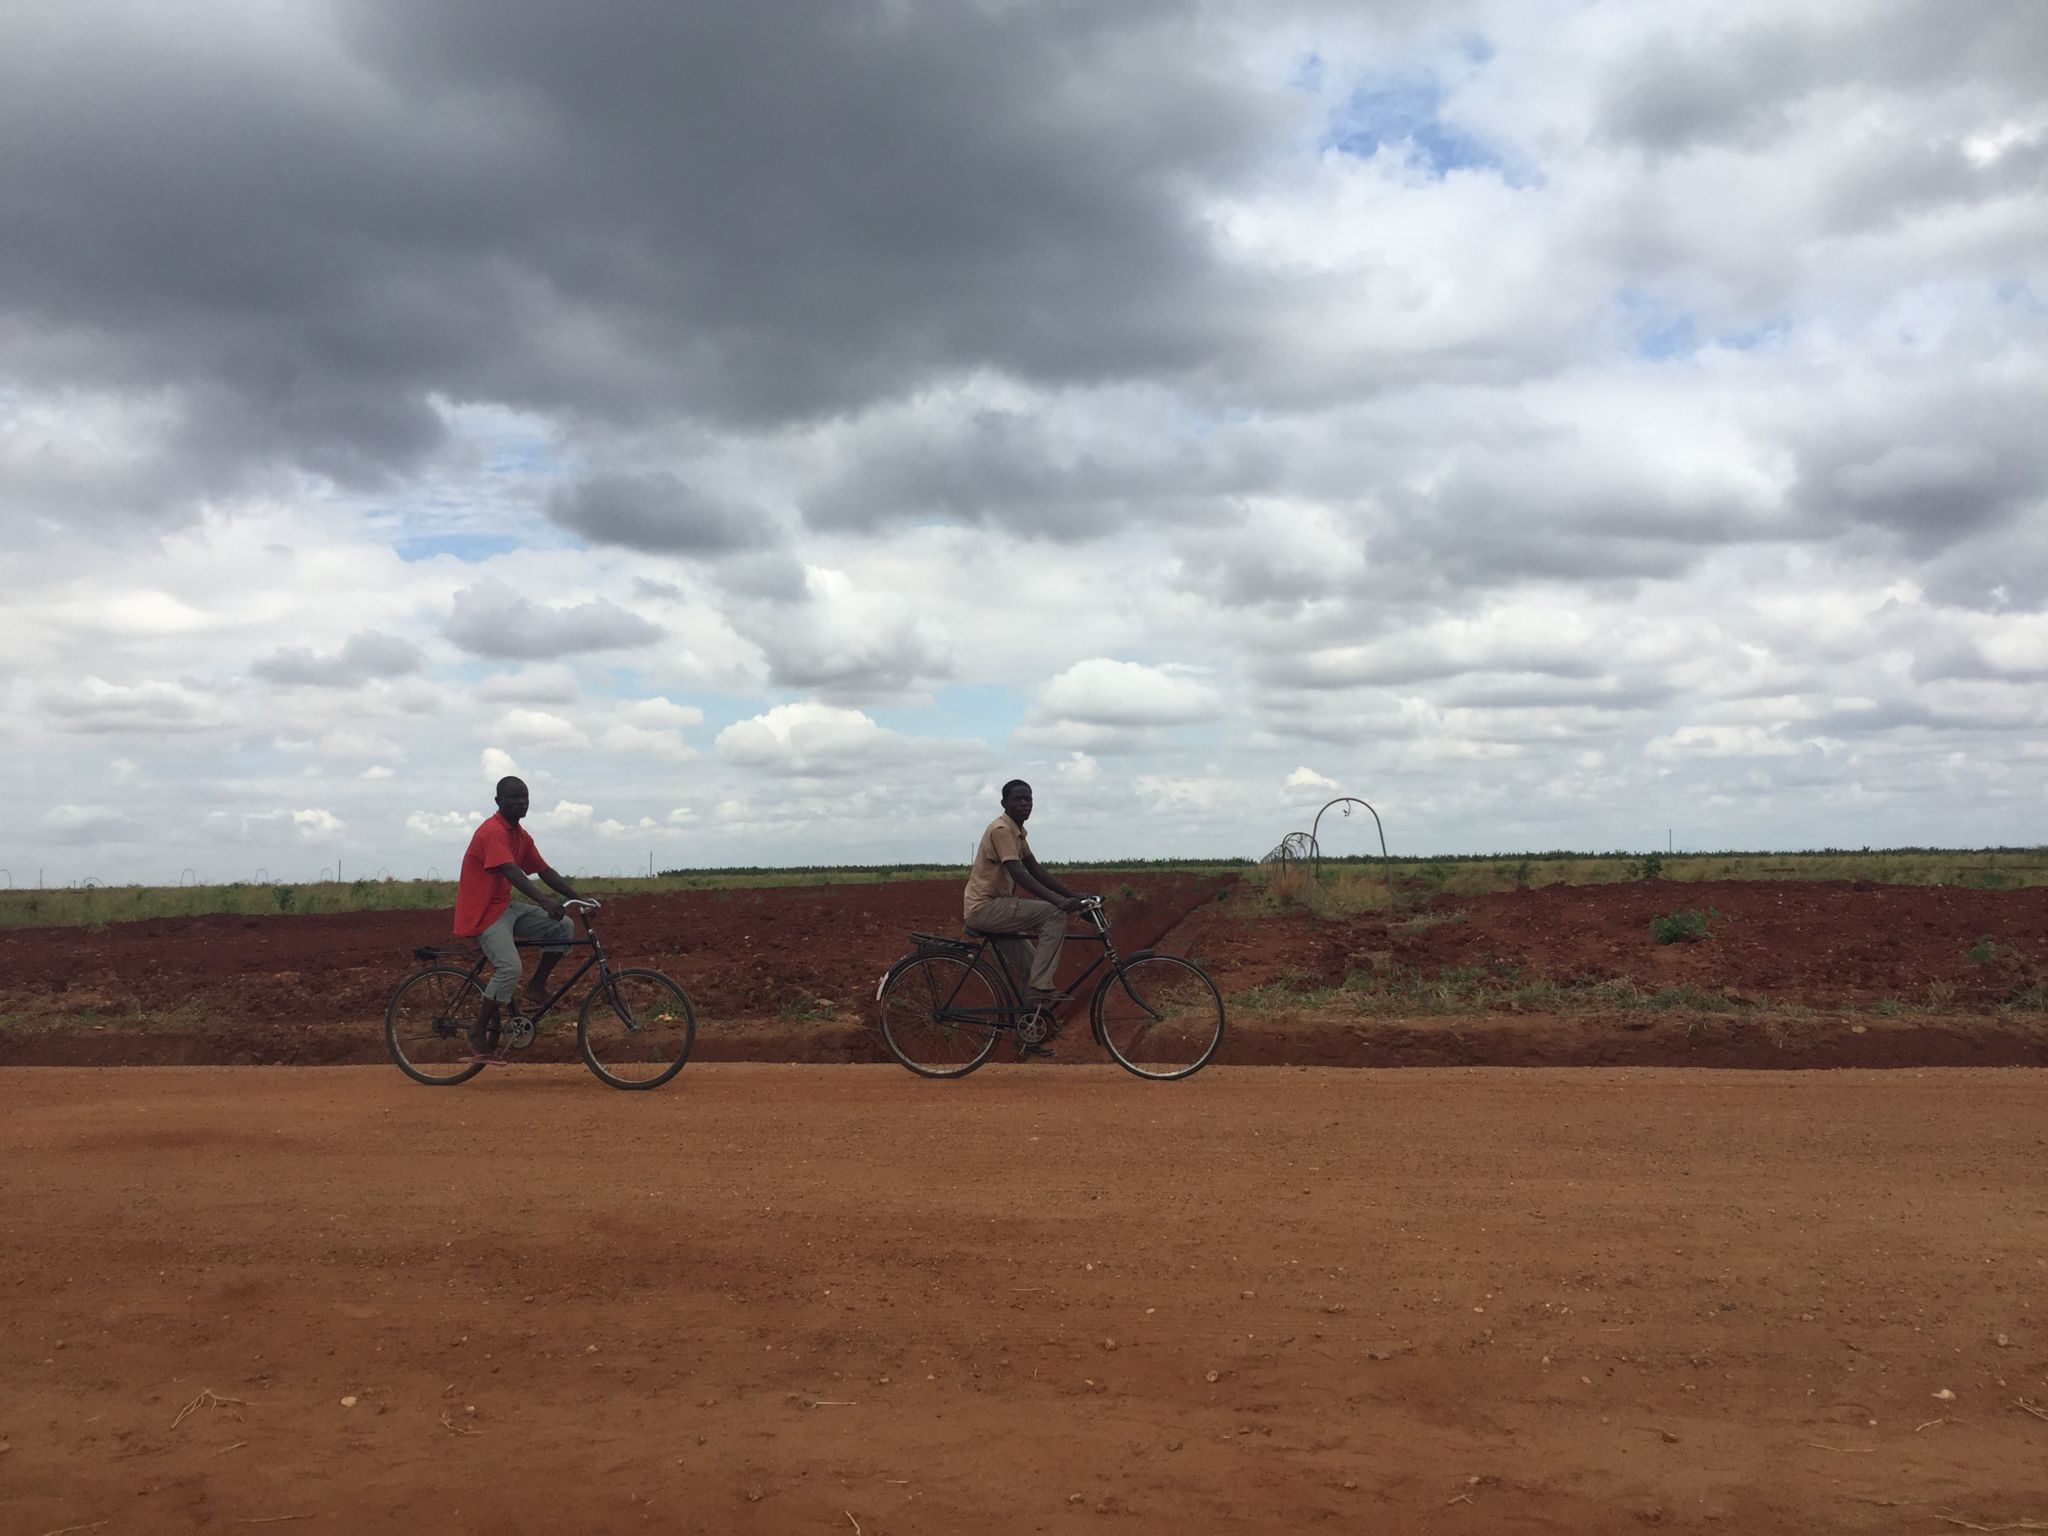 Boys riding bike in front of empty fields